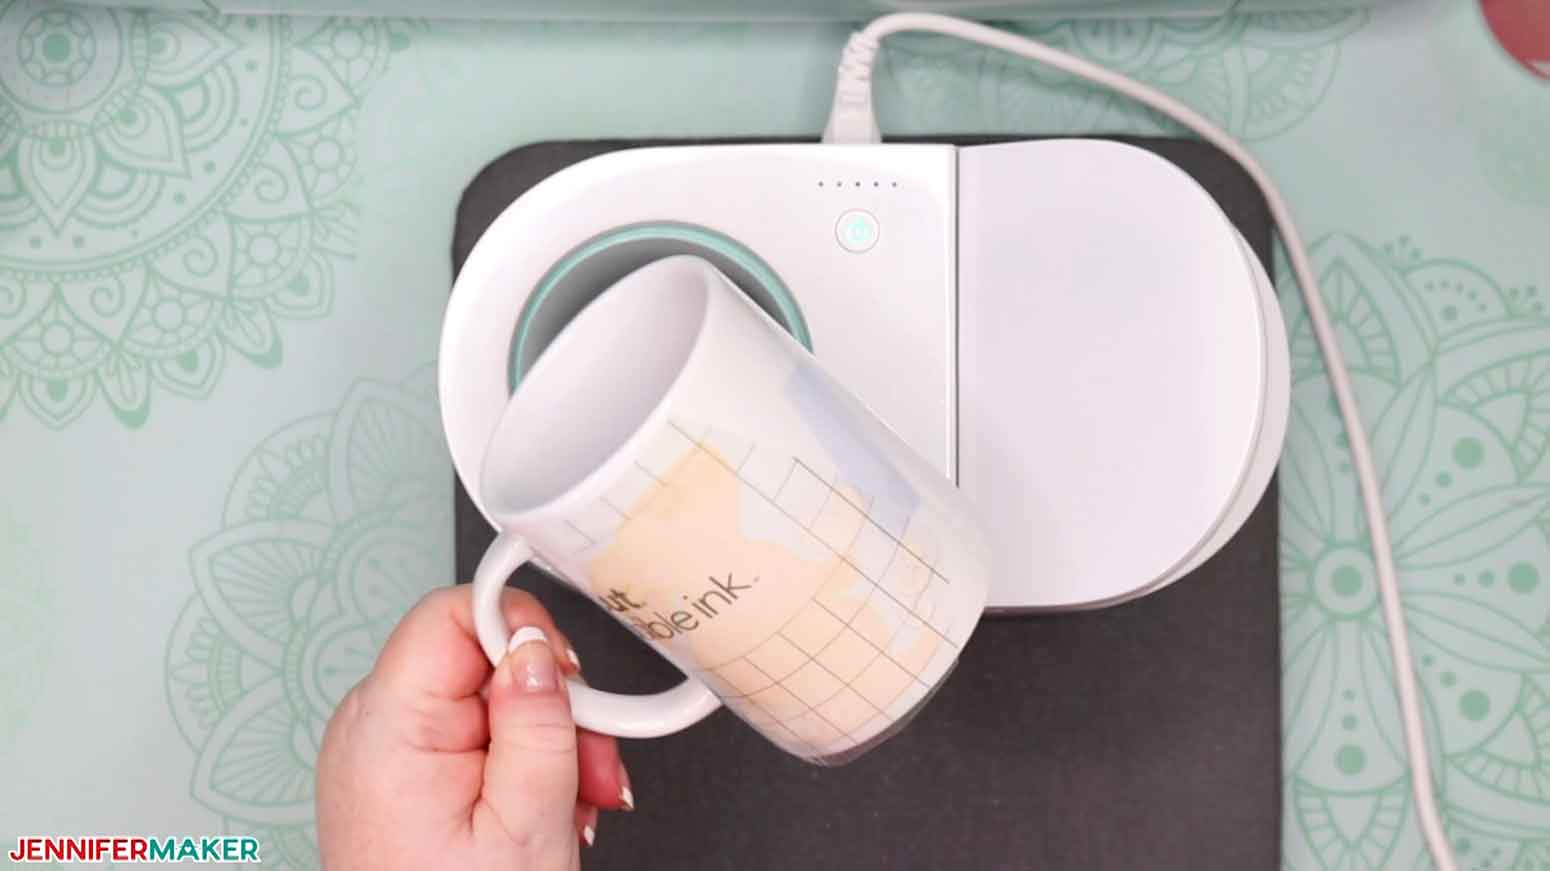 A pressed mug from the Cricut Mug Press with layered Infusible Ink